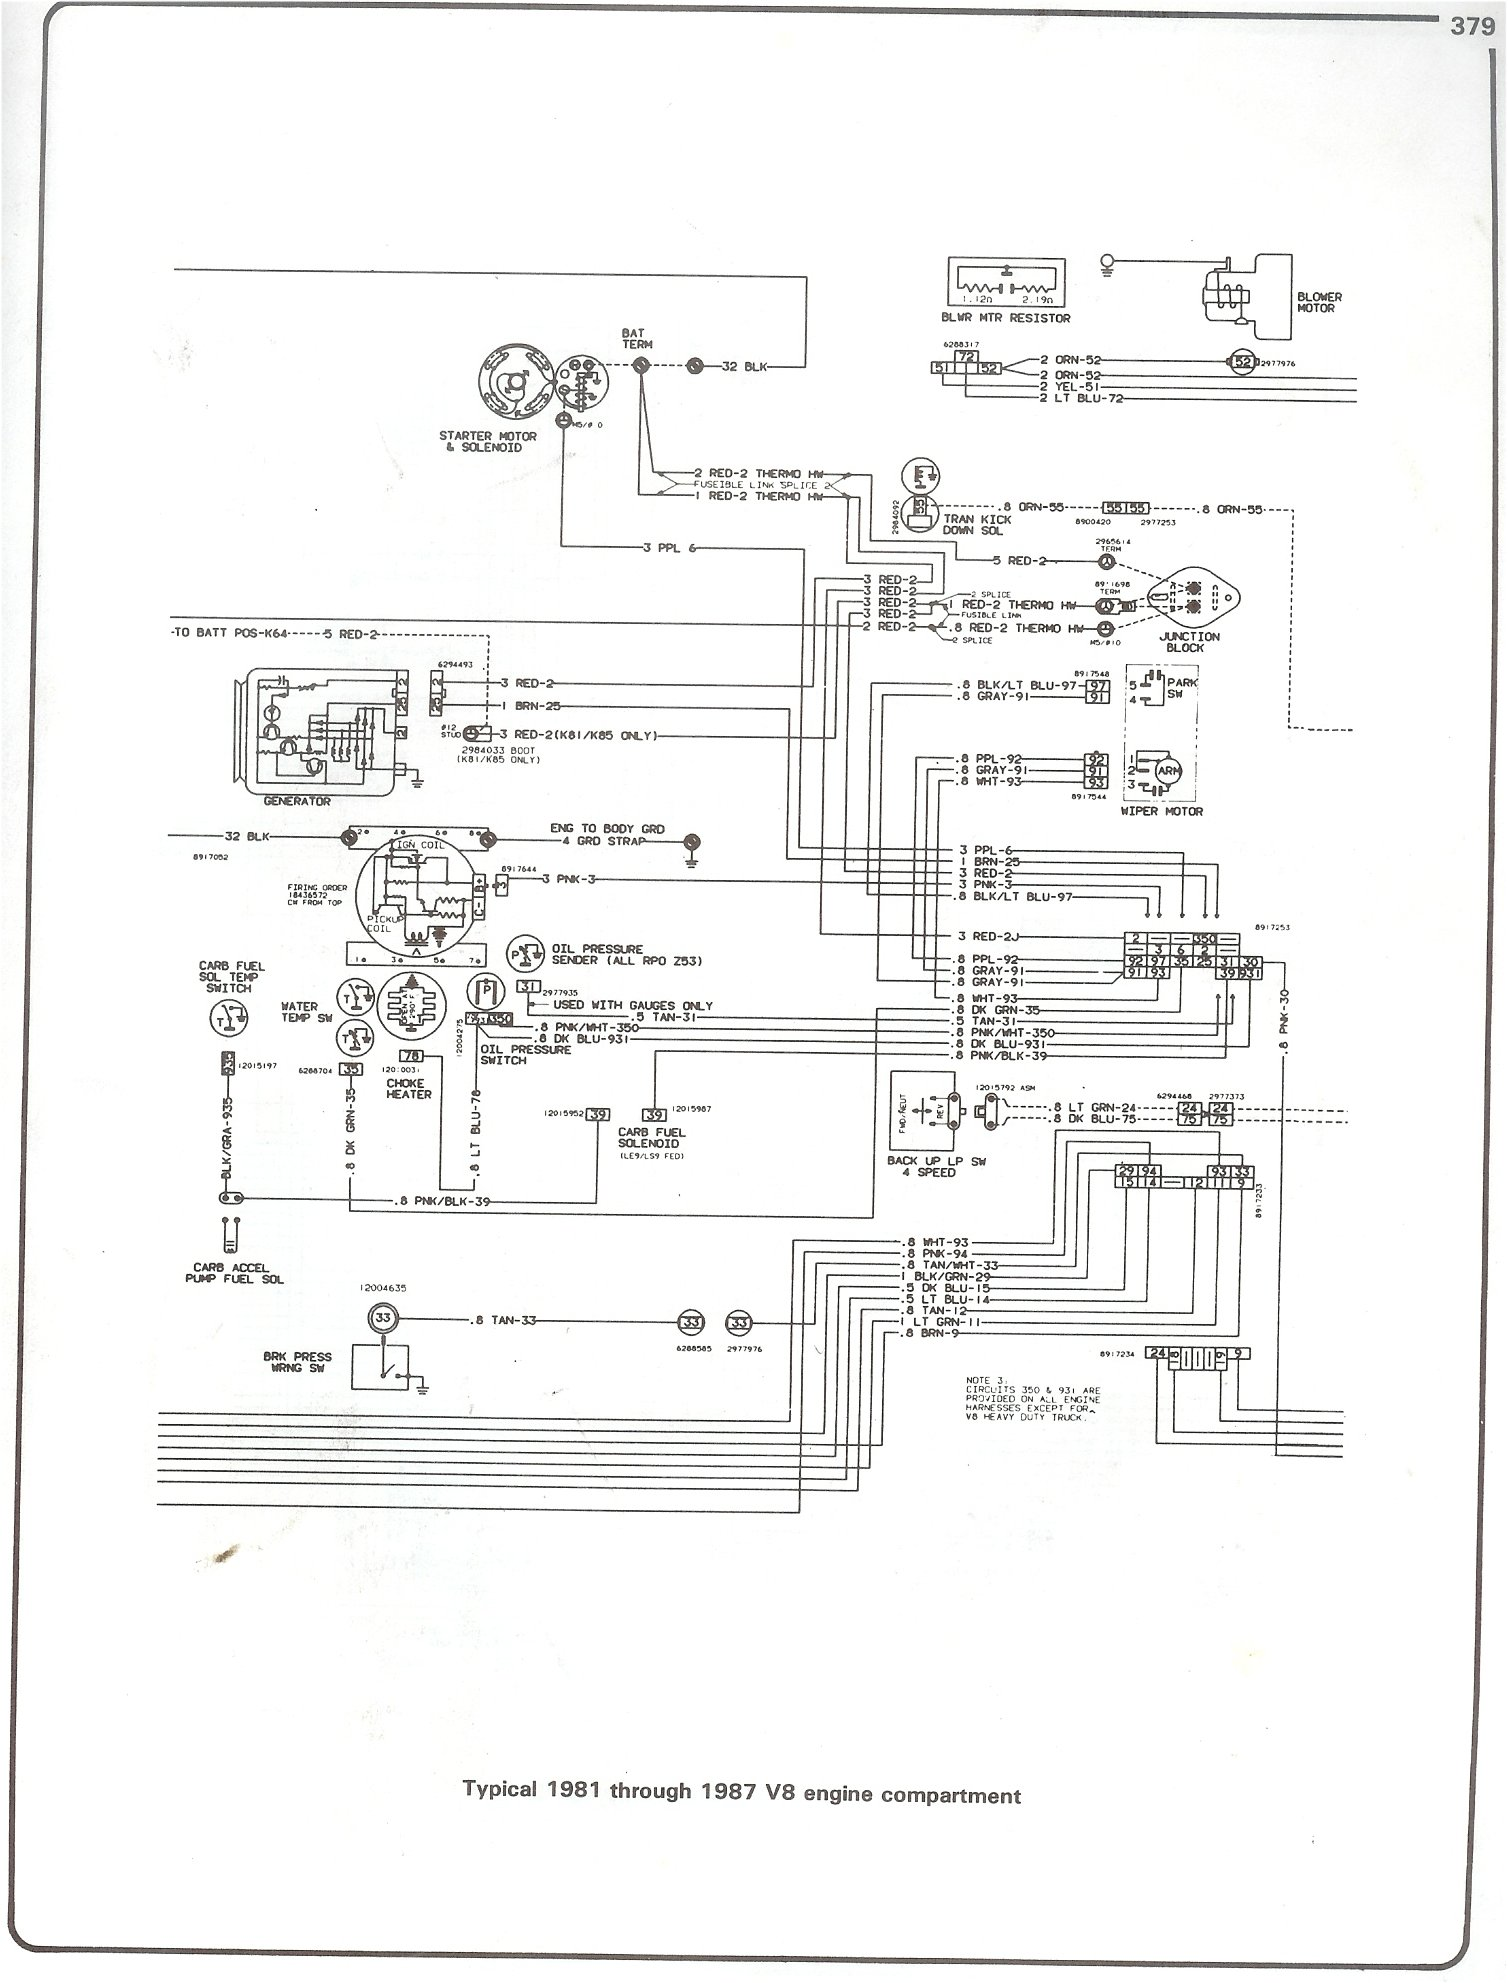 complete 73 87 wiring diagrams rh forum 73 87chevytrucks com Chevy Ignition Switch Wiring Diagram Chevy Ignition Switch Wiring Diagram